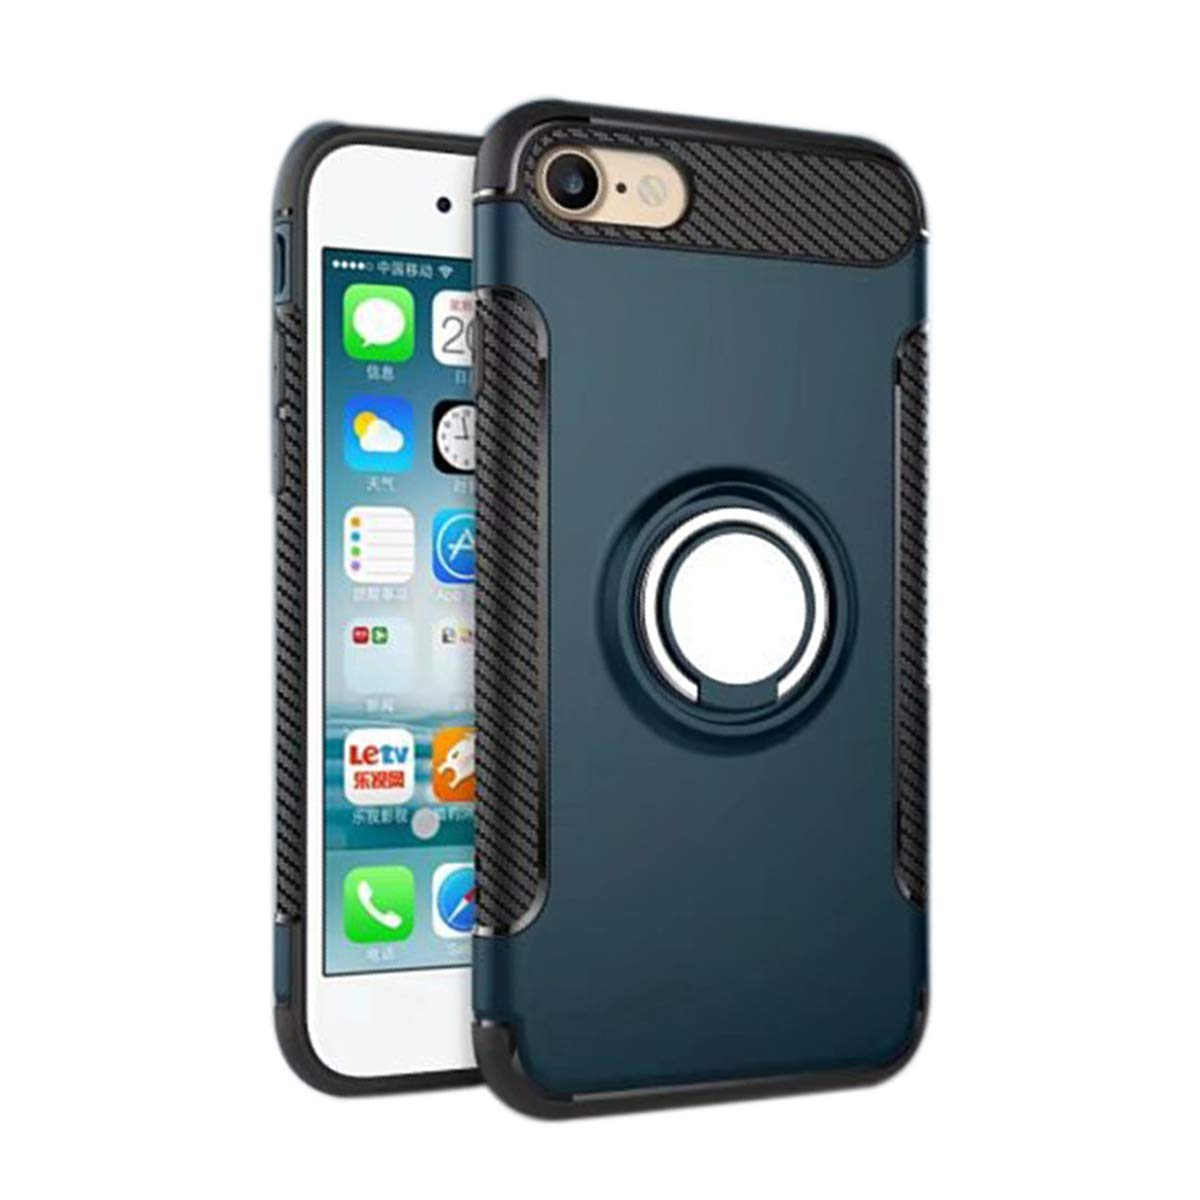 Ldea iPhone 6/6S Case, Hybrid TPU+PC Car Holder Stand Magnetic Suction Bracket Finger Ring Shockproof Case Cover for Apple iPhone 6/6S 4.7 inch (Navy Blue) by Ldea